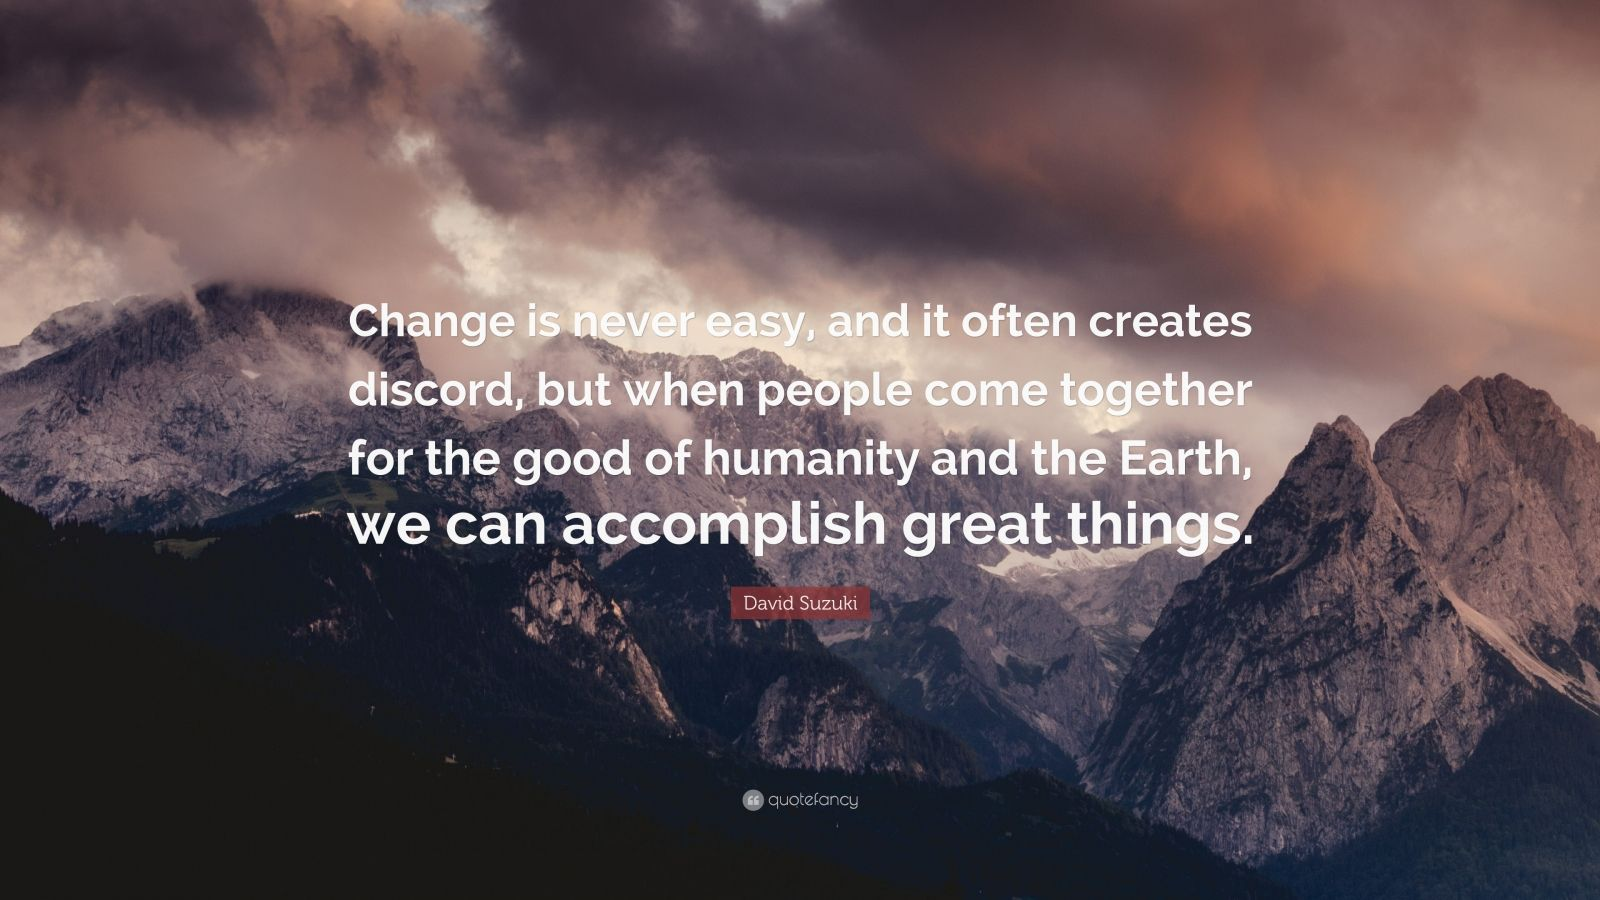 """David Suzuki Quote: """"Change is never easy, and it often creates discord, but when people come together for the good of humanity and the Earth, we can accomplish great things."""""""